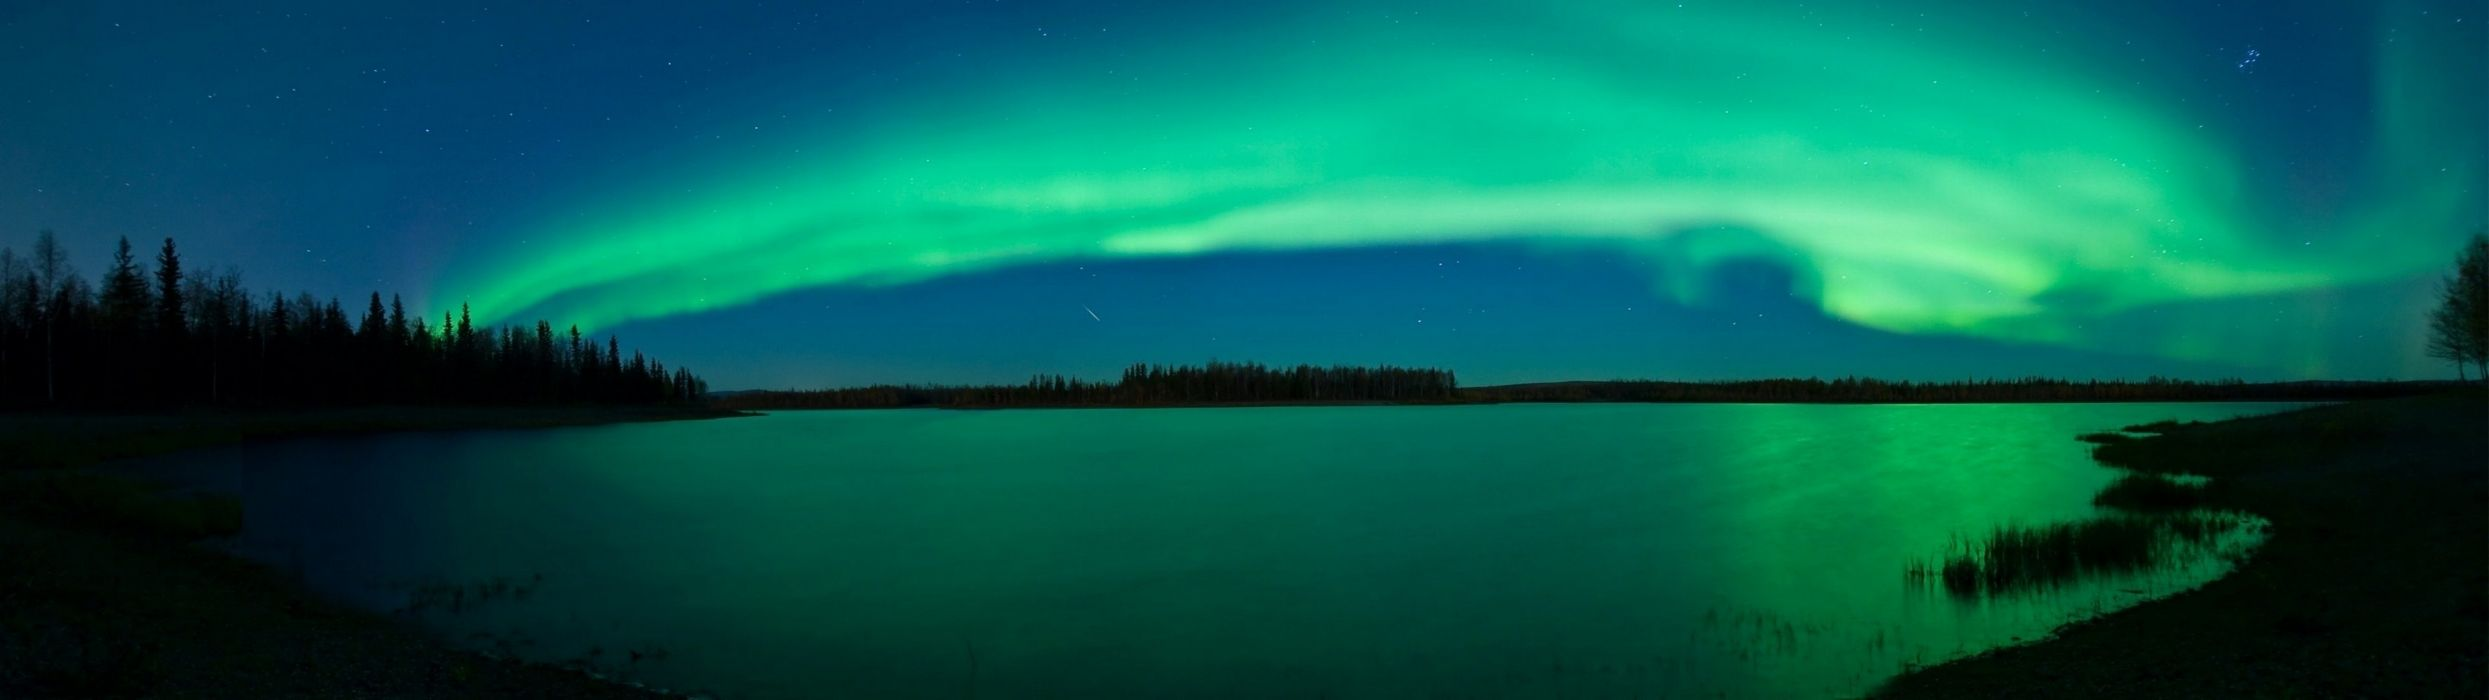 Wallpaper Aurora Posted By Ryan Tremblay